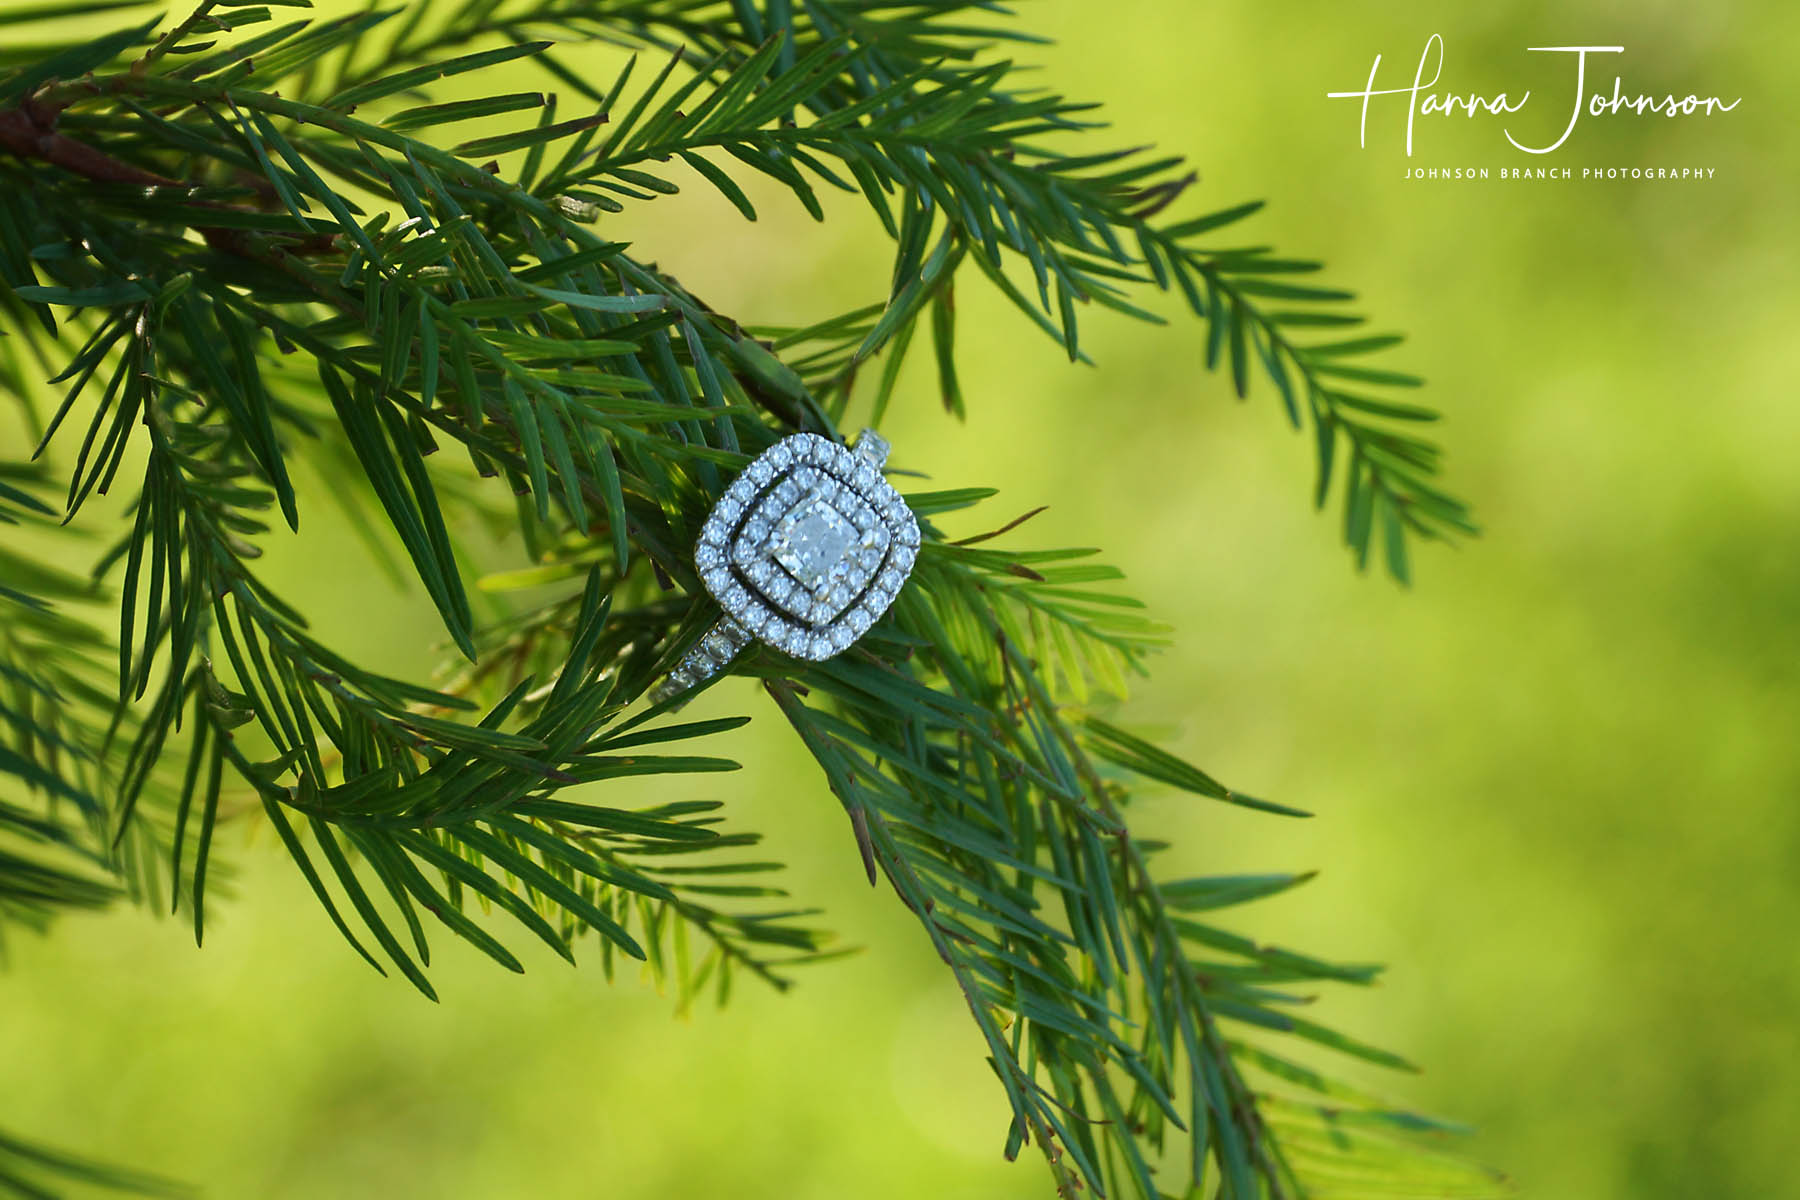 Beautiful ring photo on pine branch, Lexington, KY engagement photo session